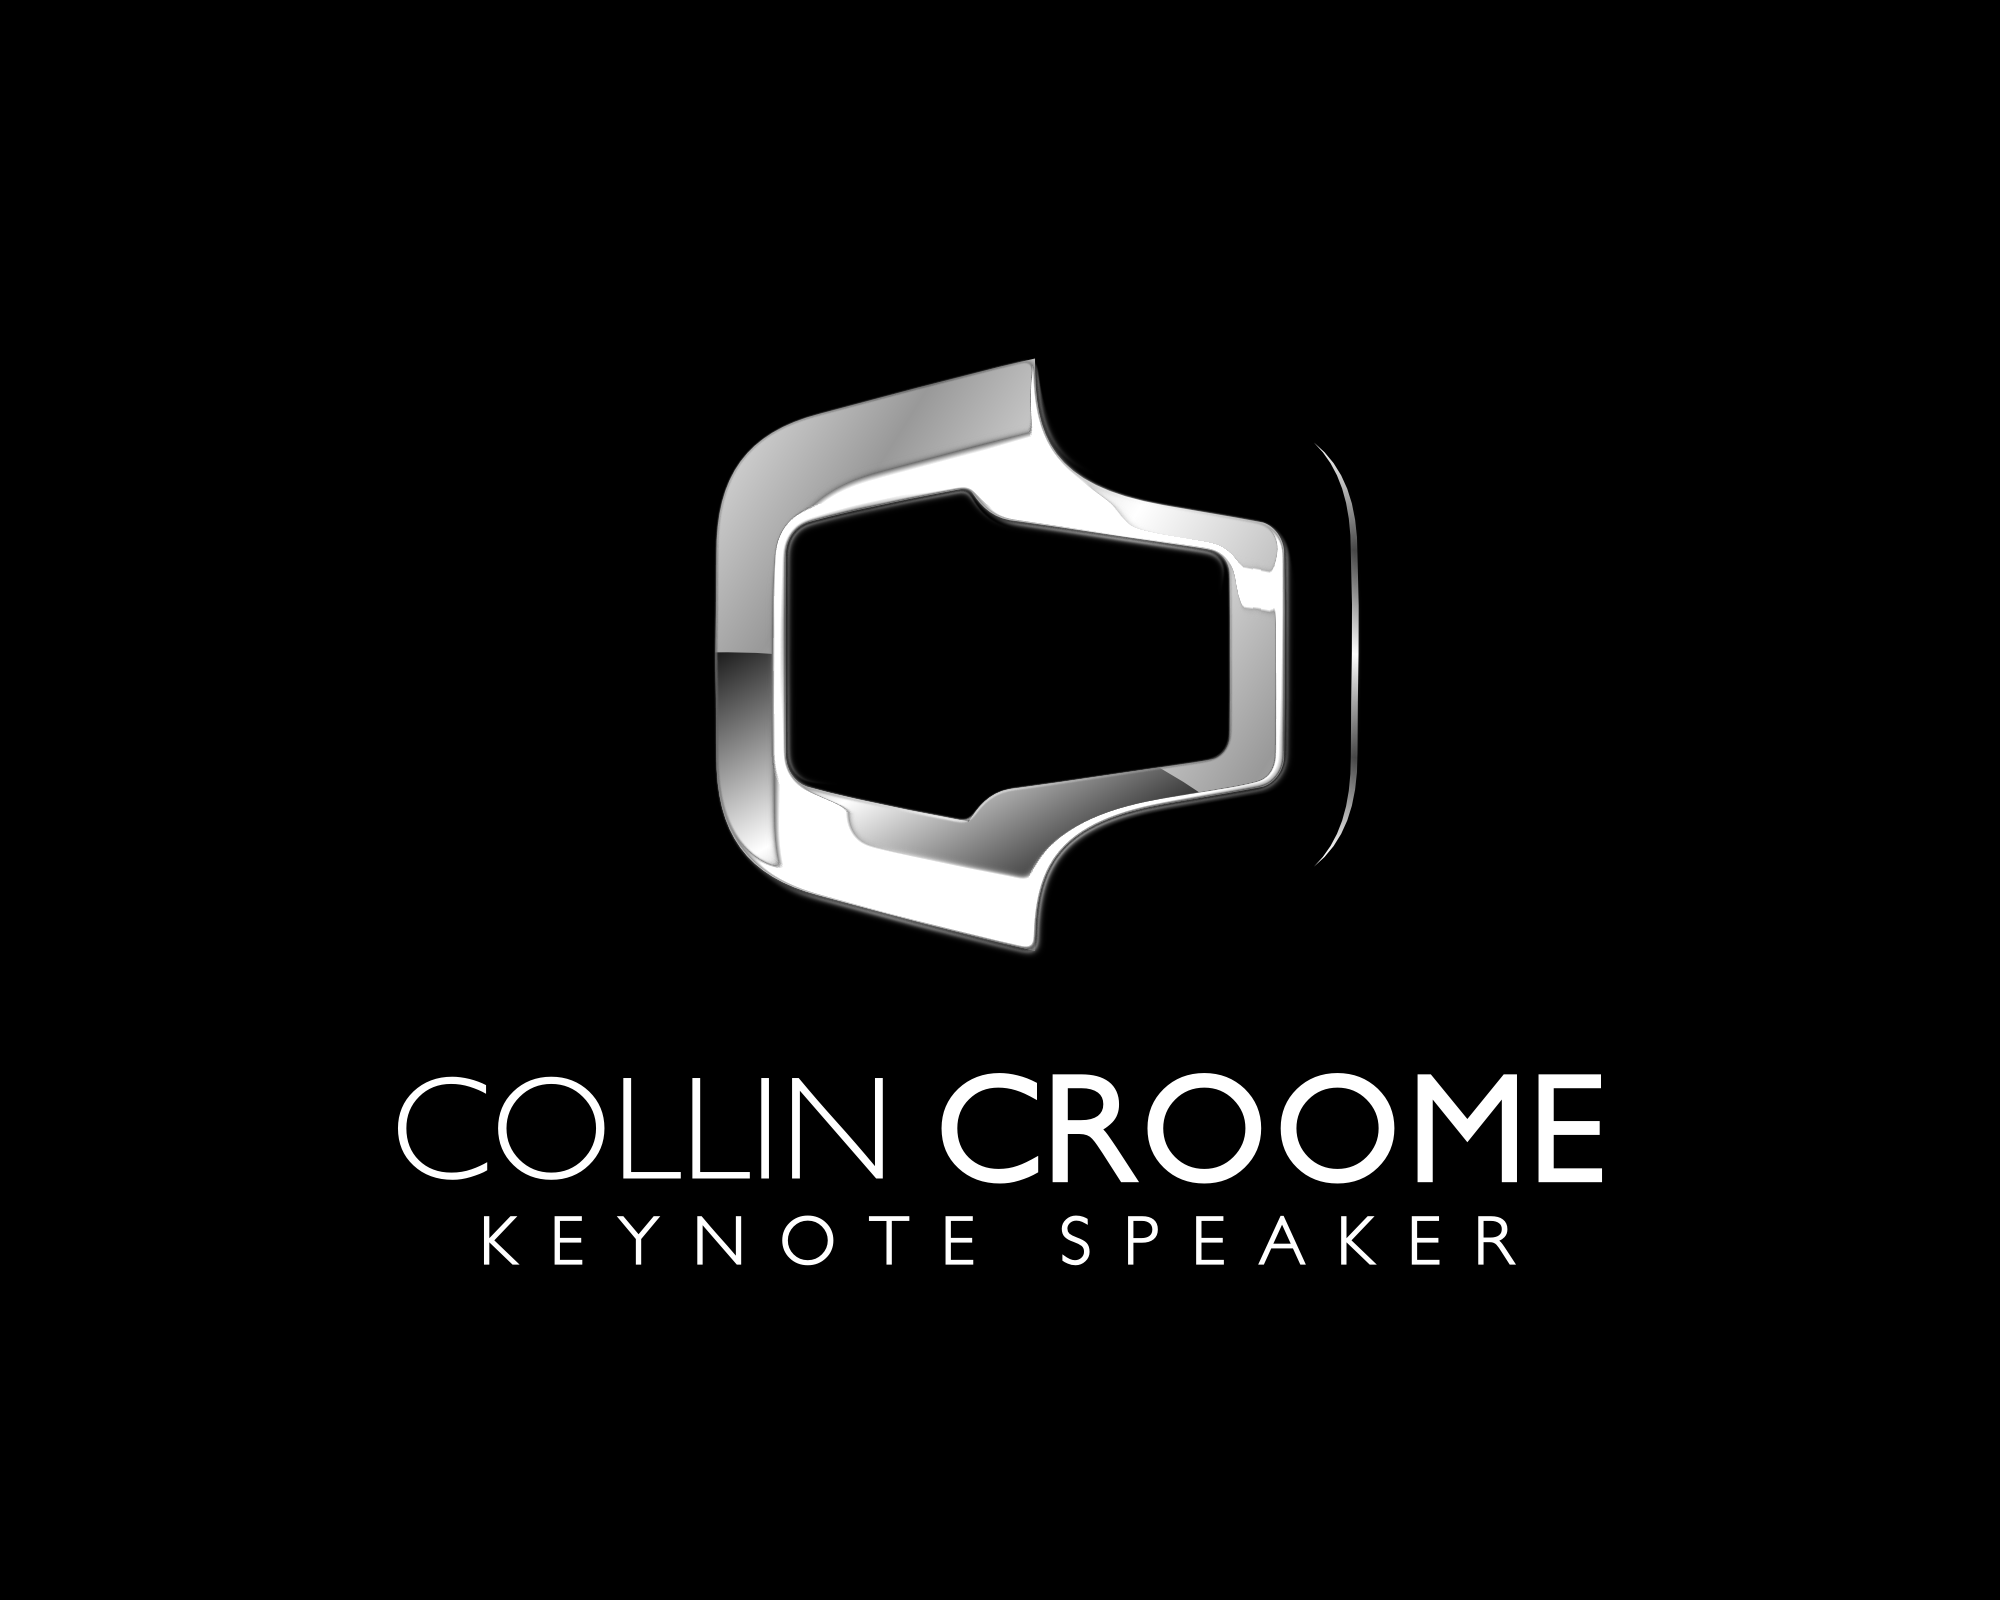 Logo Design by explogos - Entry No. 84 in the Logo Design Contest Modern Logo Design for Collin Croome.